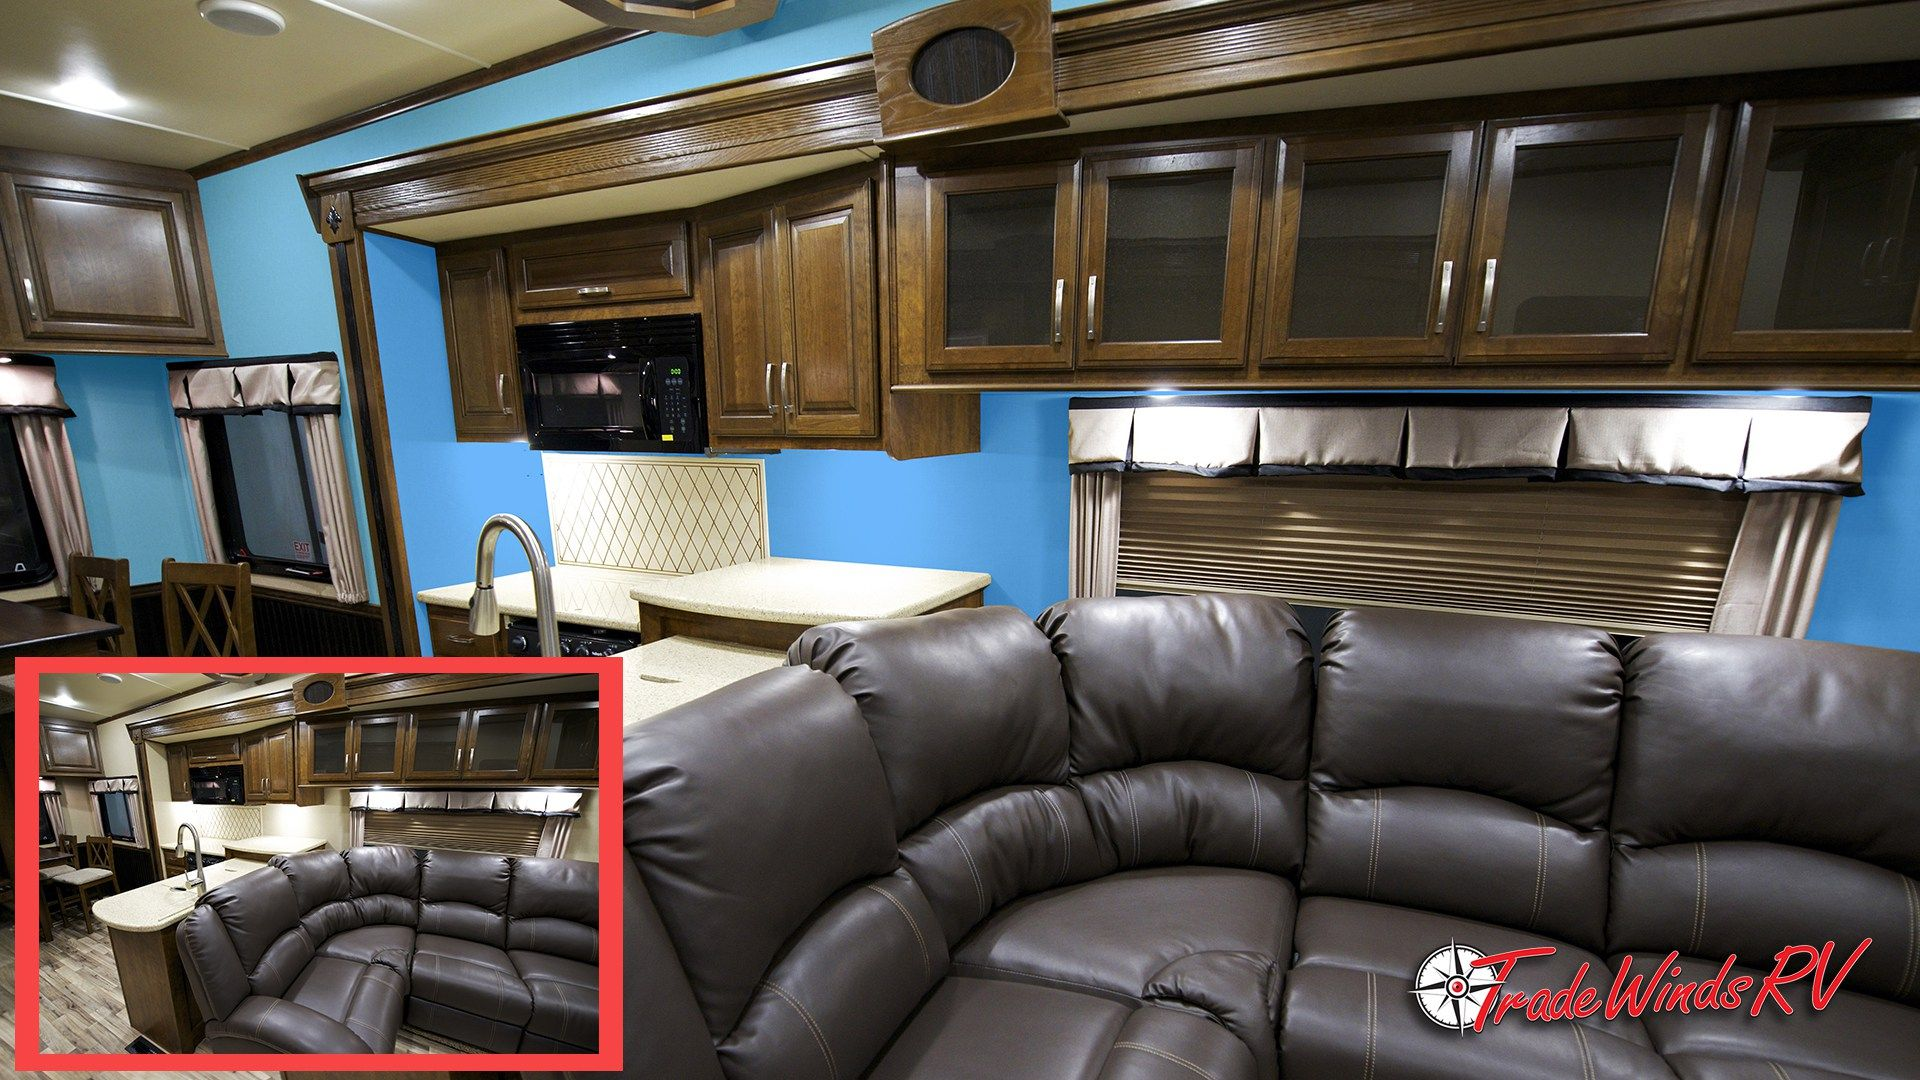 Tips For Painting Over RV Walls Or Wallpaper Rv interior